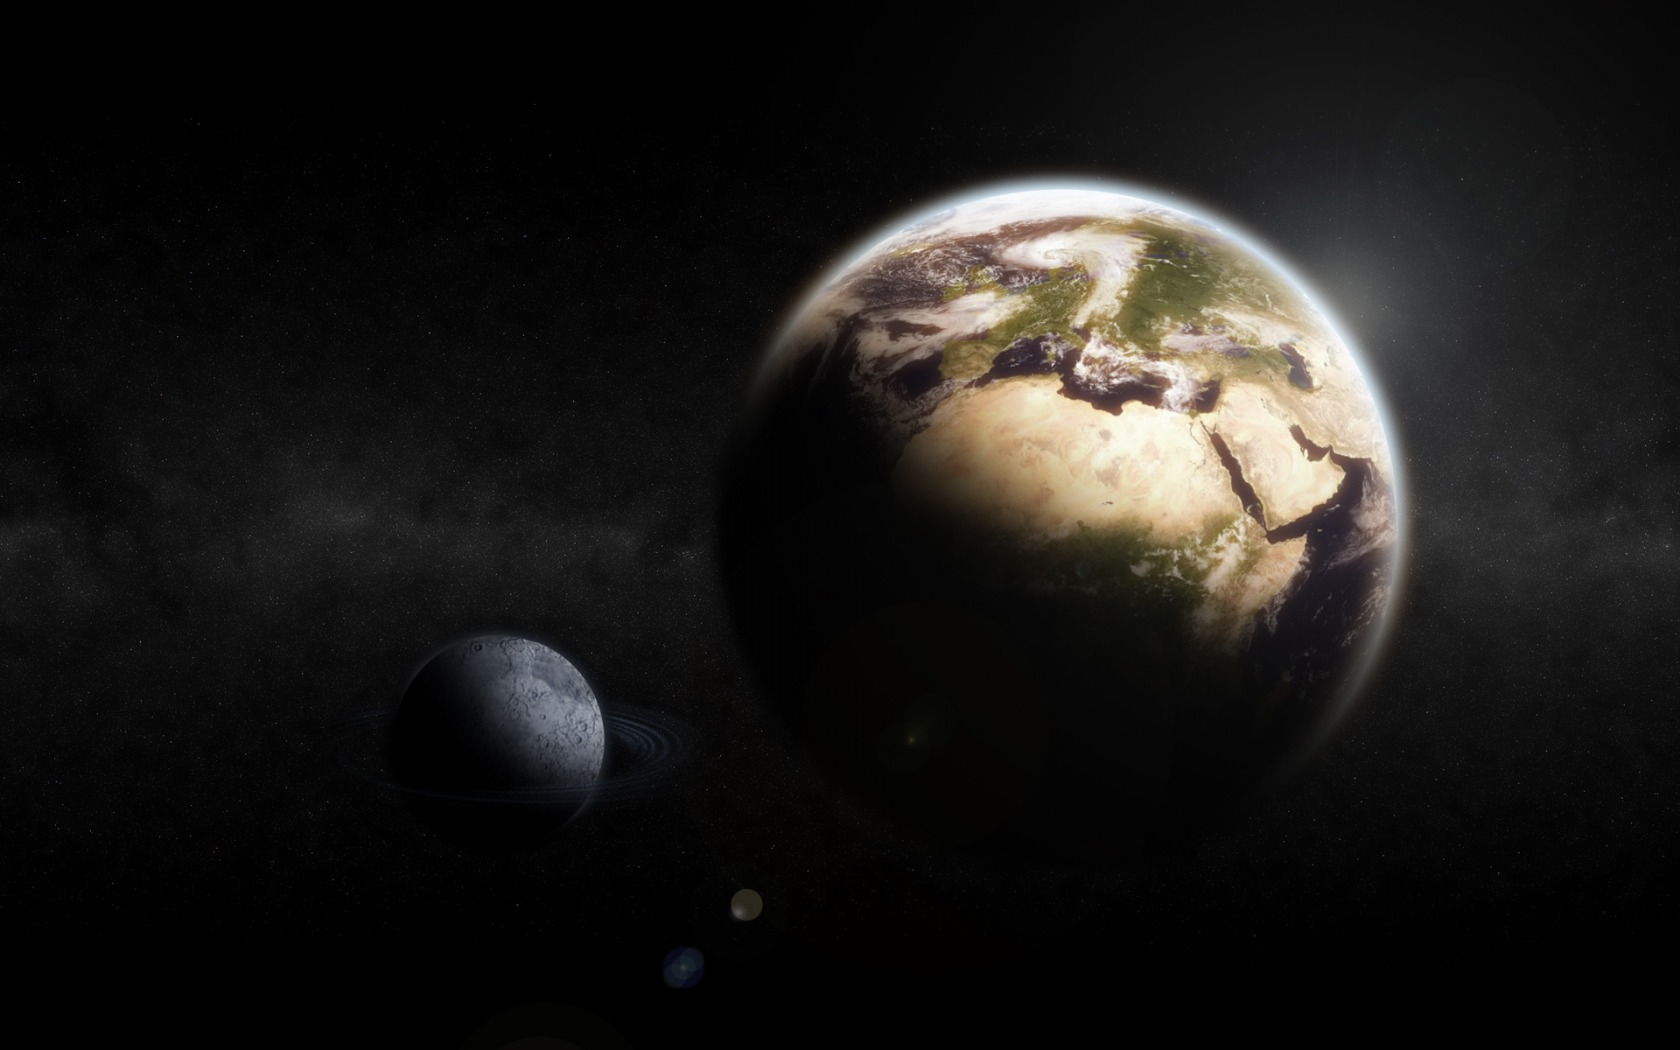 earth_and_moon_1680x1050